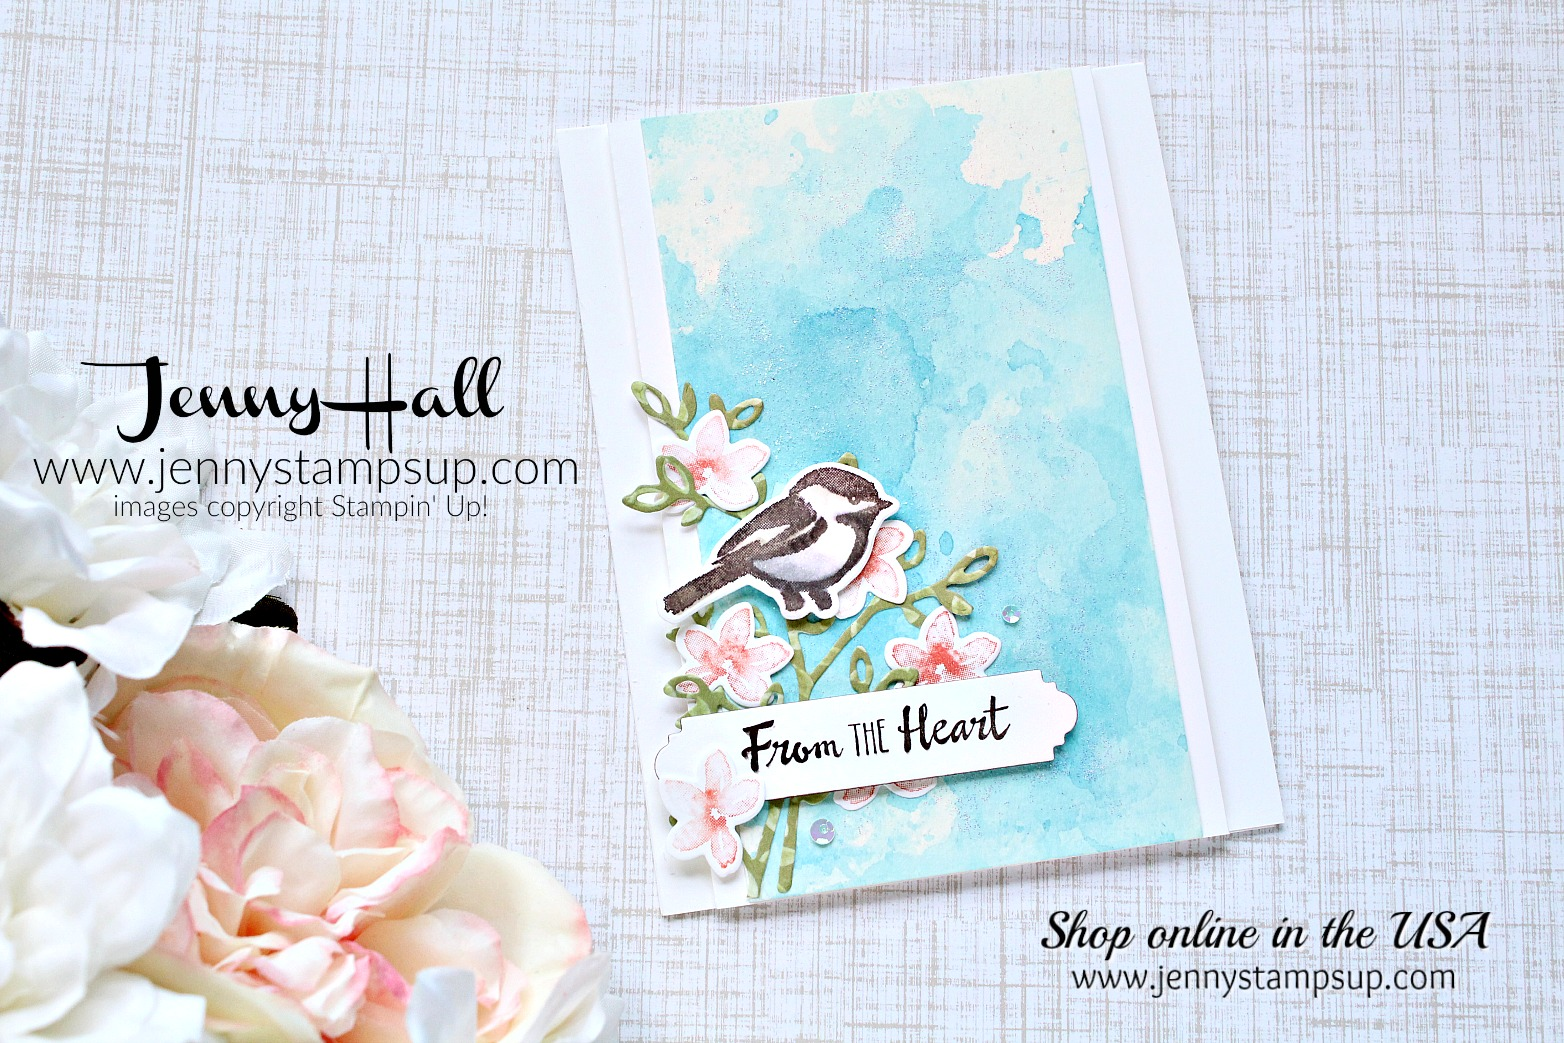 Warm thoughts card by Jenny Hall at www.jennyhalldesign.com for #cardmaking #cardmakingvideos #stampinup #jennyhalldesign #jennyhall #jennystampsup #jennyhallstampinup #halljenny #cardmaking#stampinup #stamping #papercraft #rubberstamp #petalpalette #cardmakingdesign #cardmakingtechnique #watercolor #inksmooshing